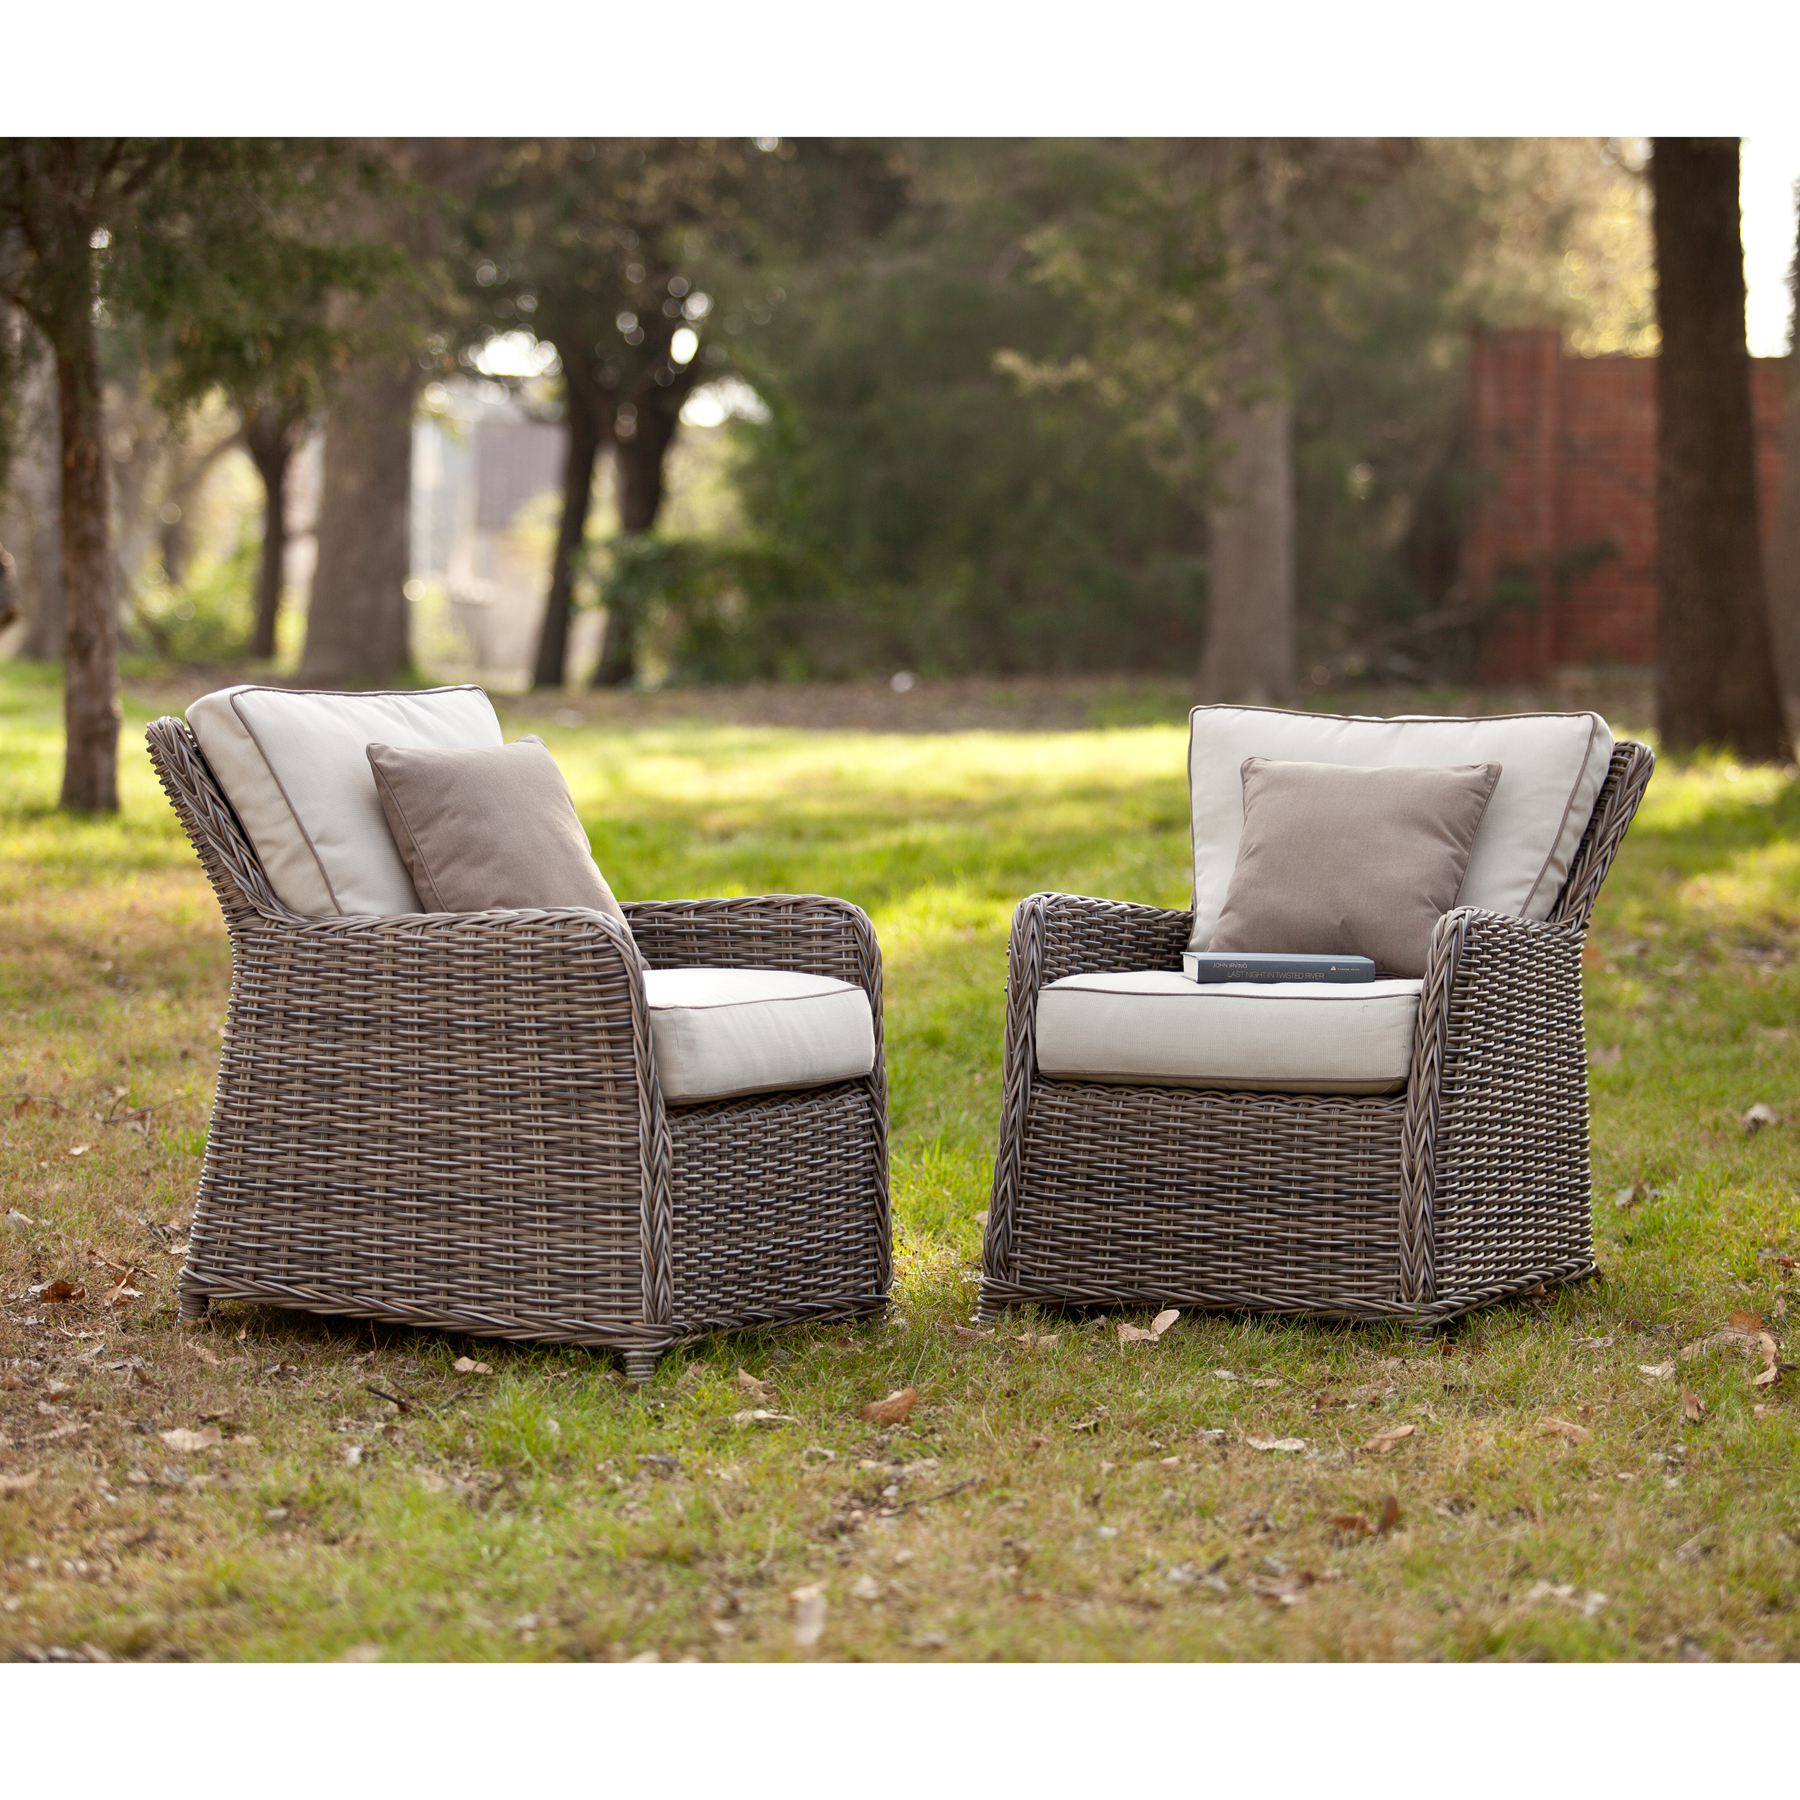 Avadi Outdoor Chairs 2Pc Set